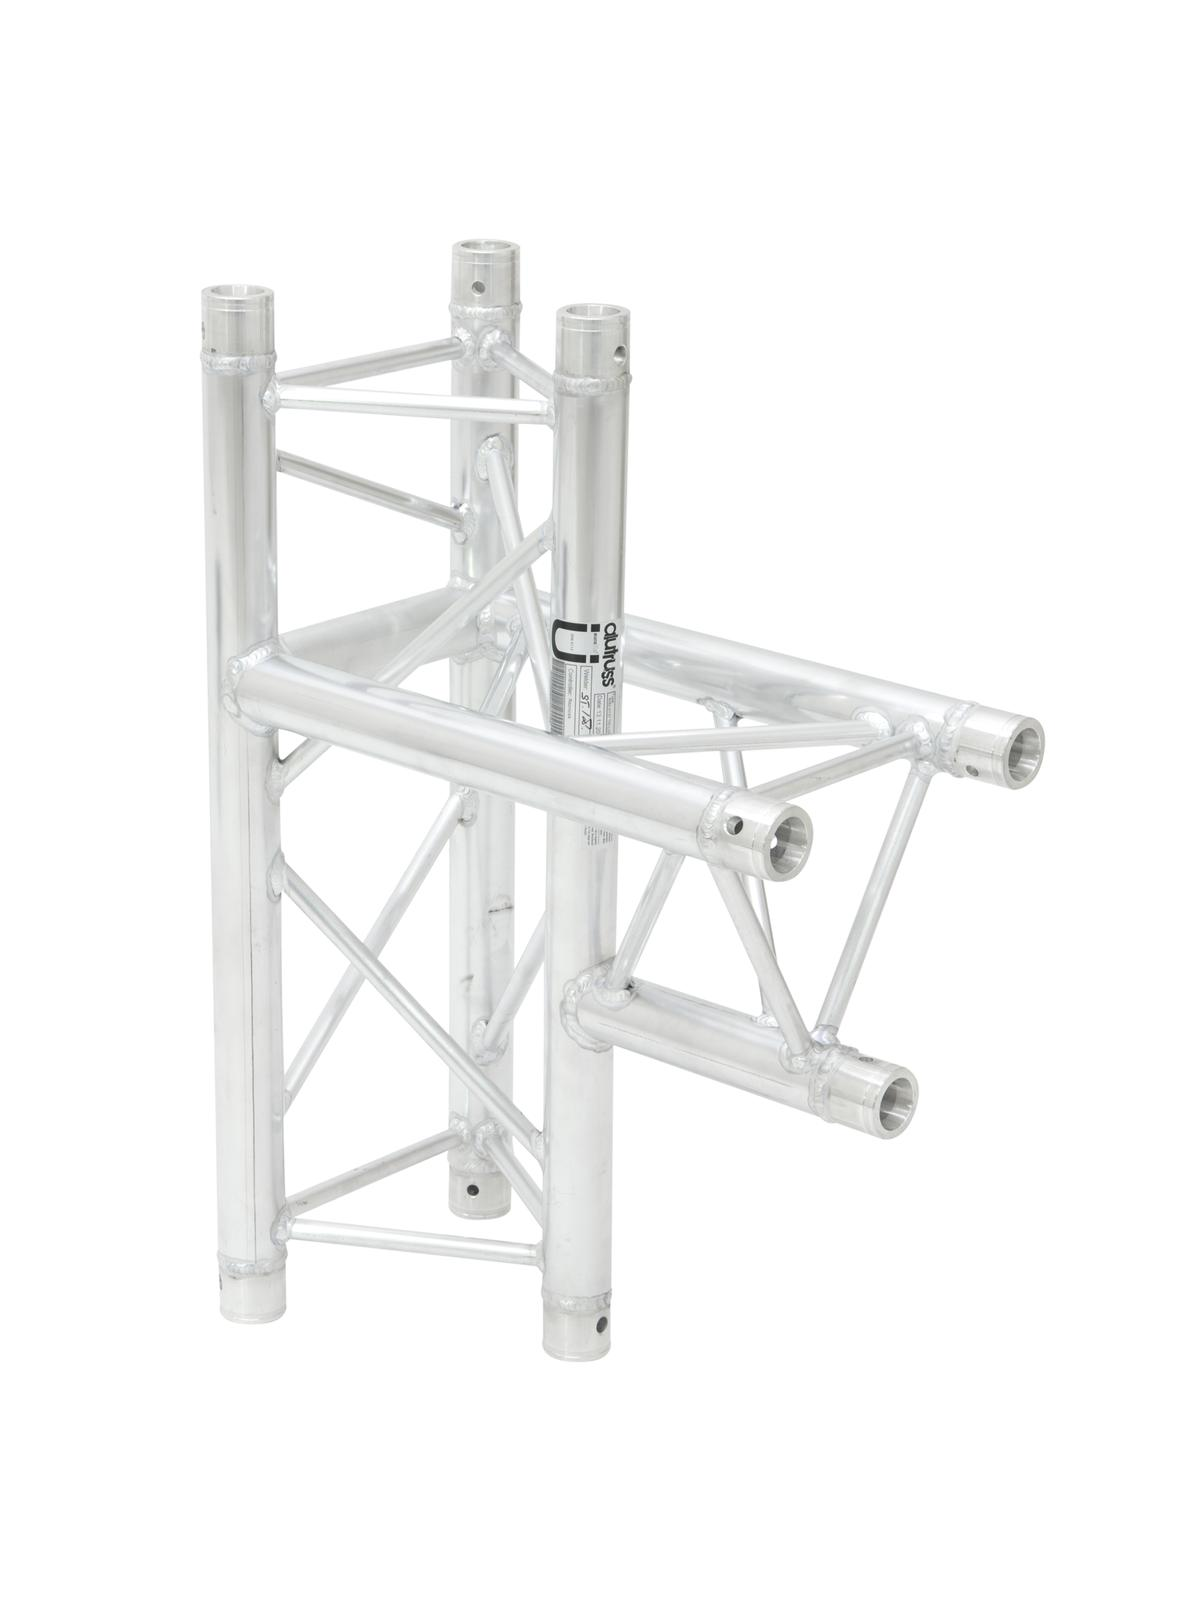 ALUTRUSS TRILOCK 6082AT-37 3 vie raccordo a T